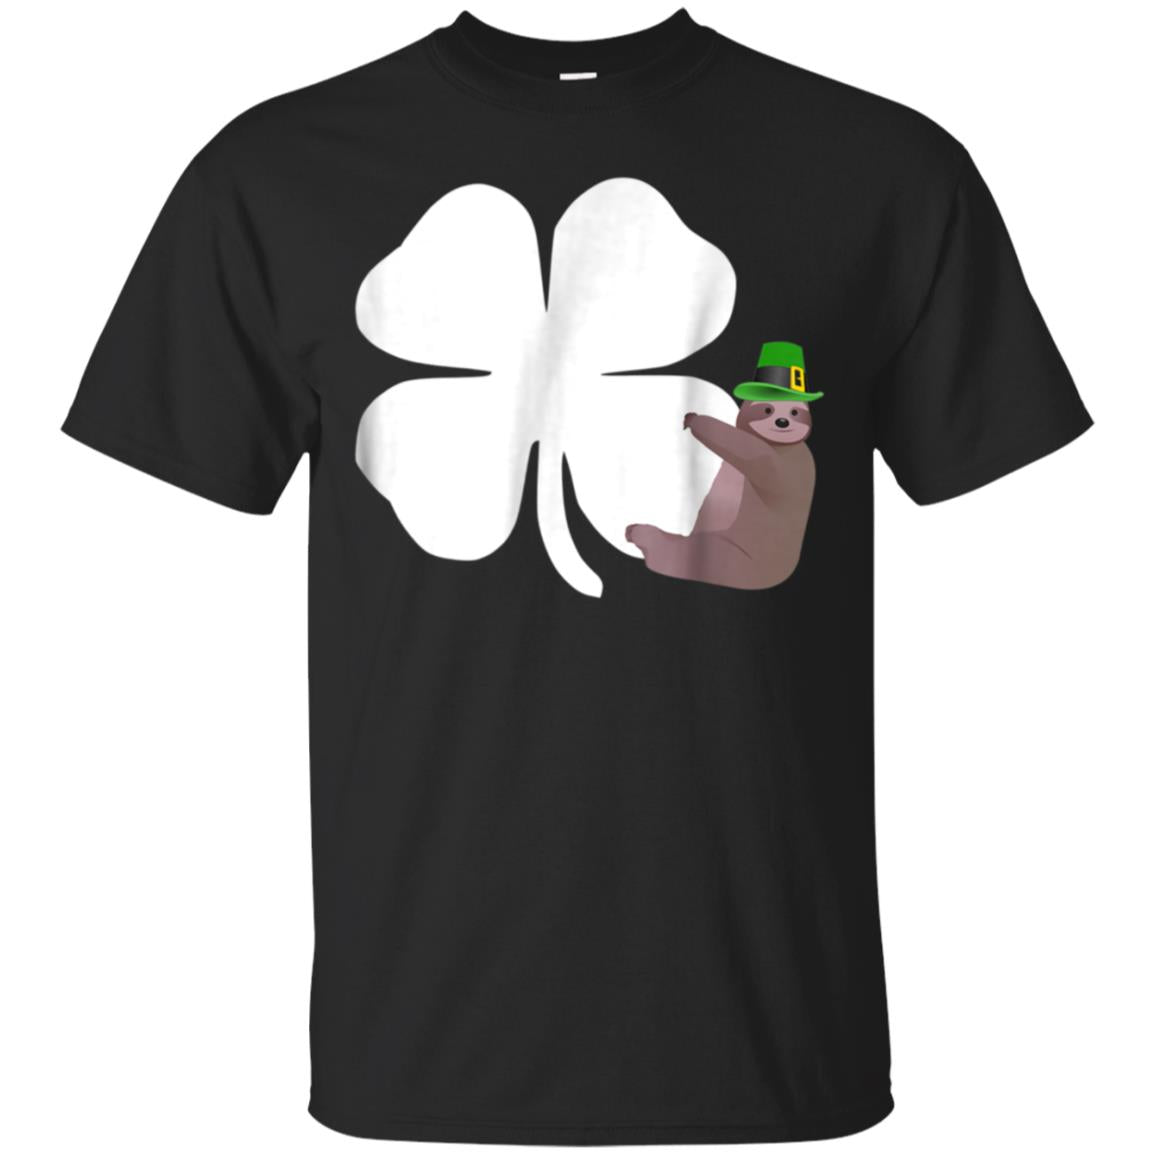 St. Patrick's Day Shirt SLOTH WOMENS MENS KIDS FUNNY CUTE 99promocode